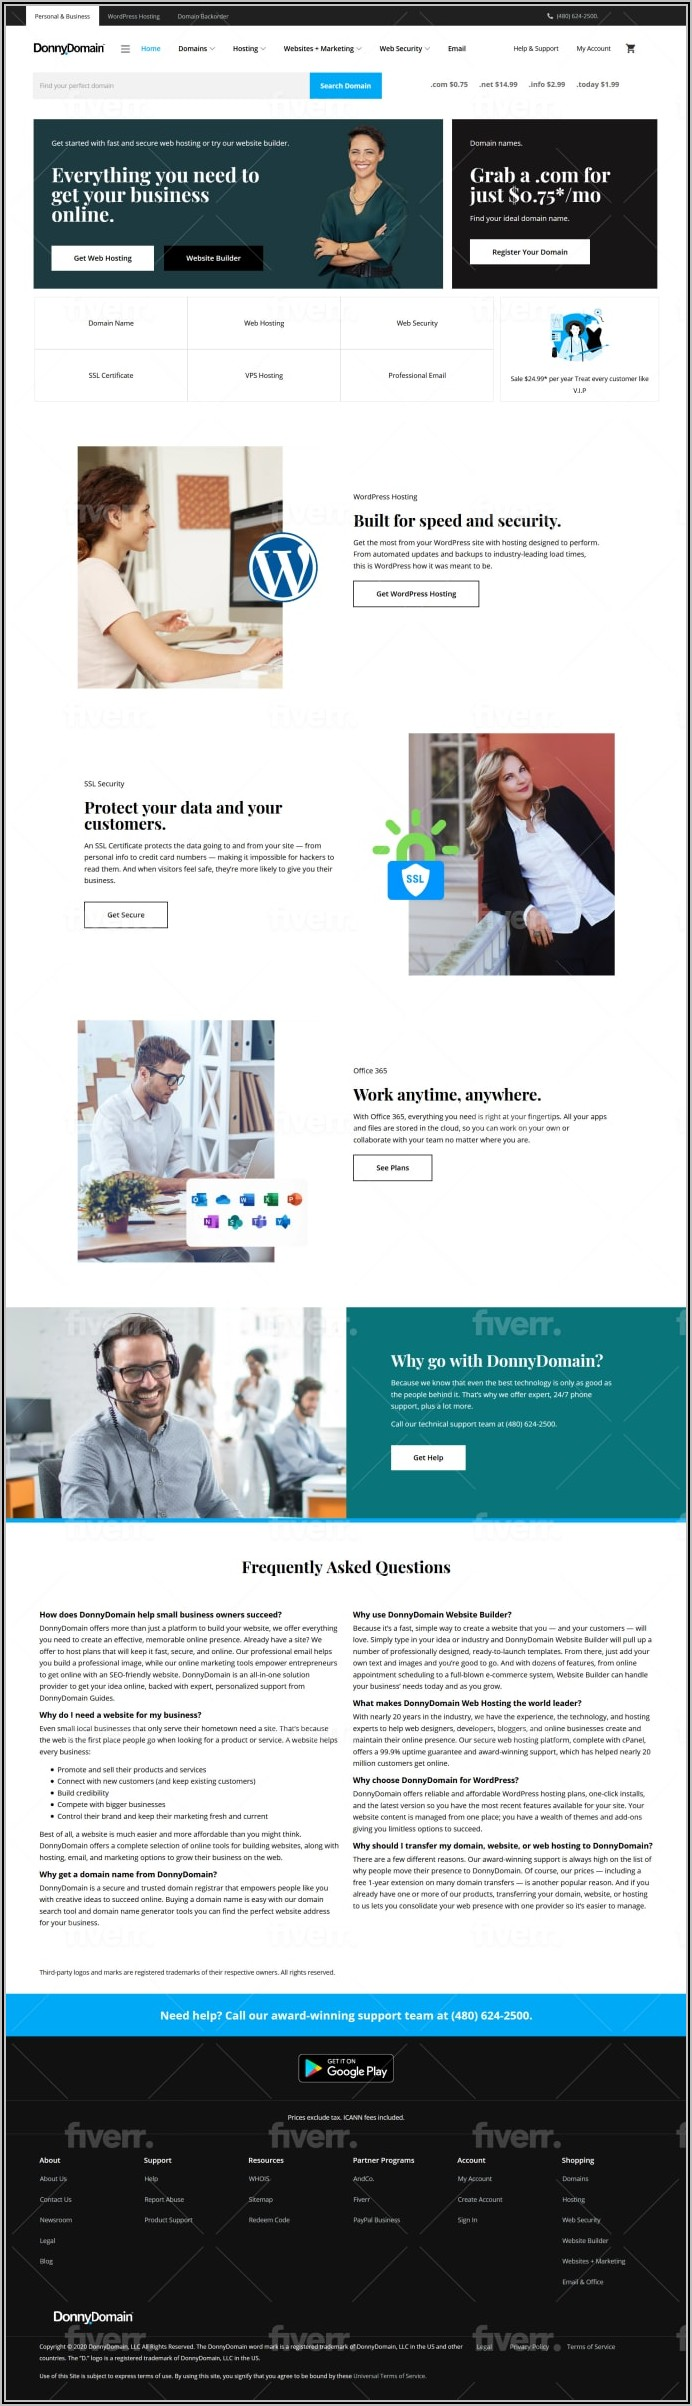 Godaddy Reseller Storefront Templates